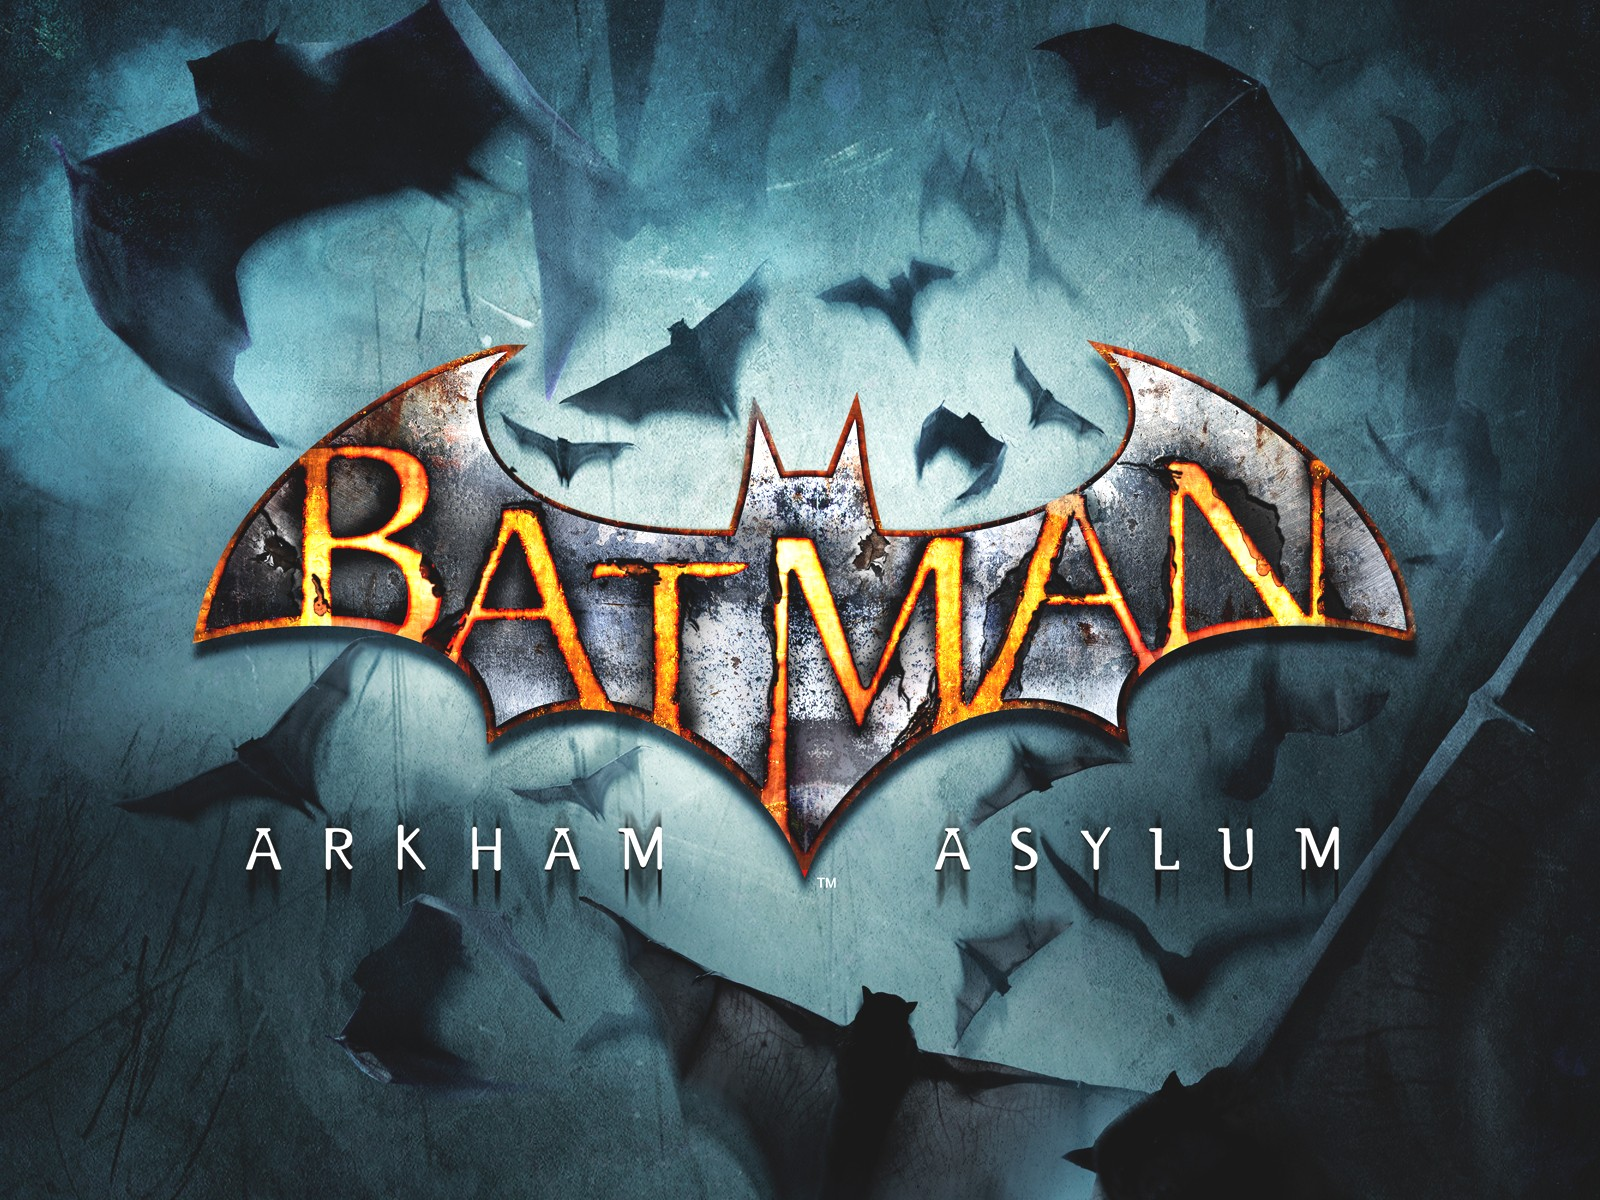 Batman Arkham Asylum Wallpaper: Logo & Logo Wallpaper Collection: BATMAN LOGO WALLPAPER